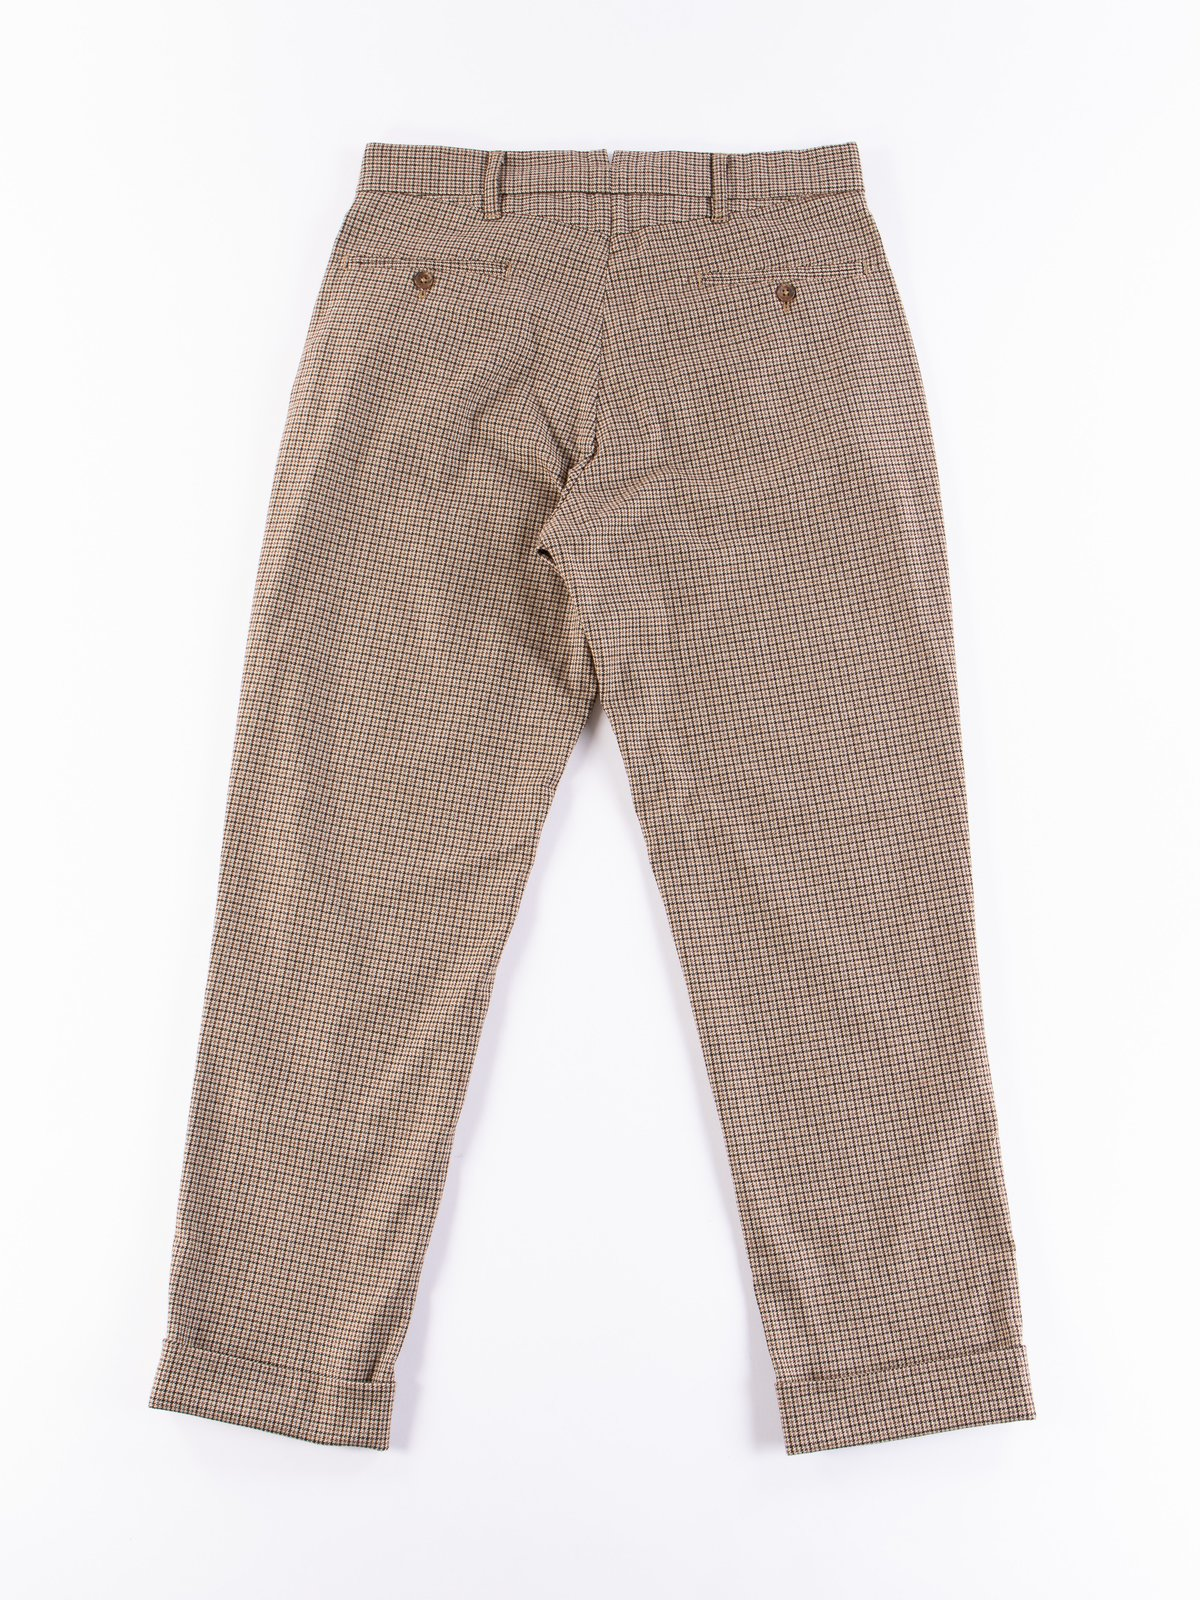 Brown Wool Poly Gunclub Check Andover Pant - Image 7